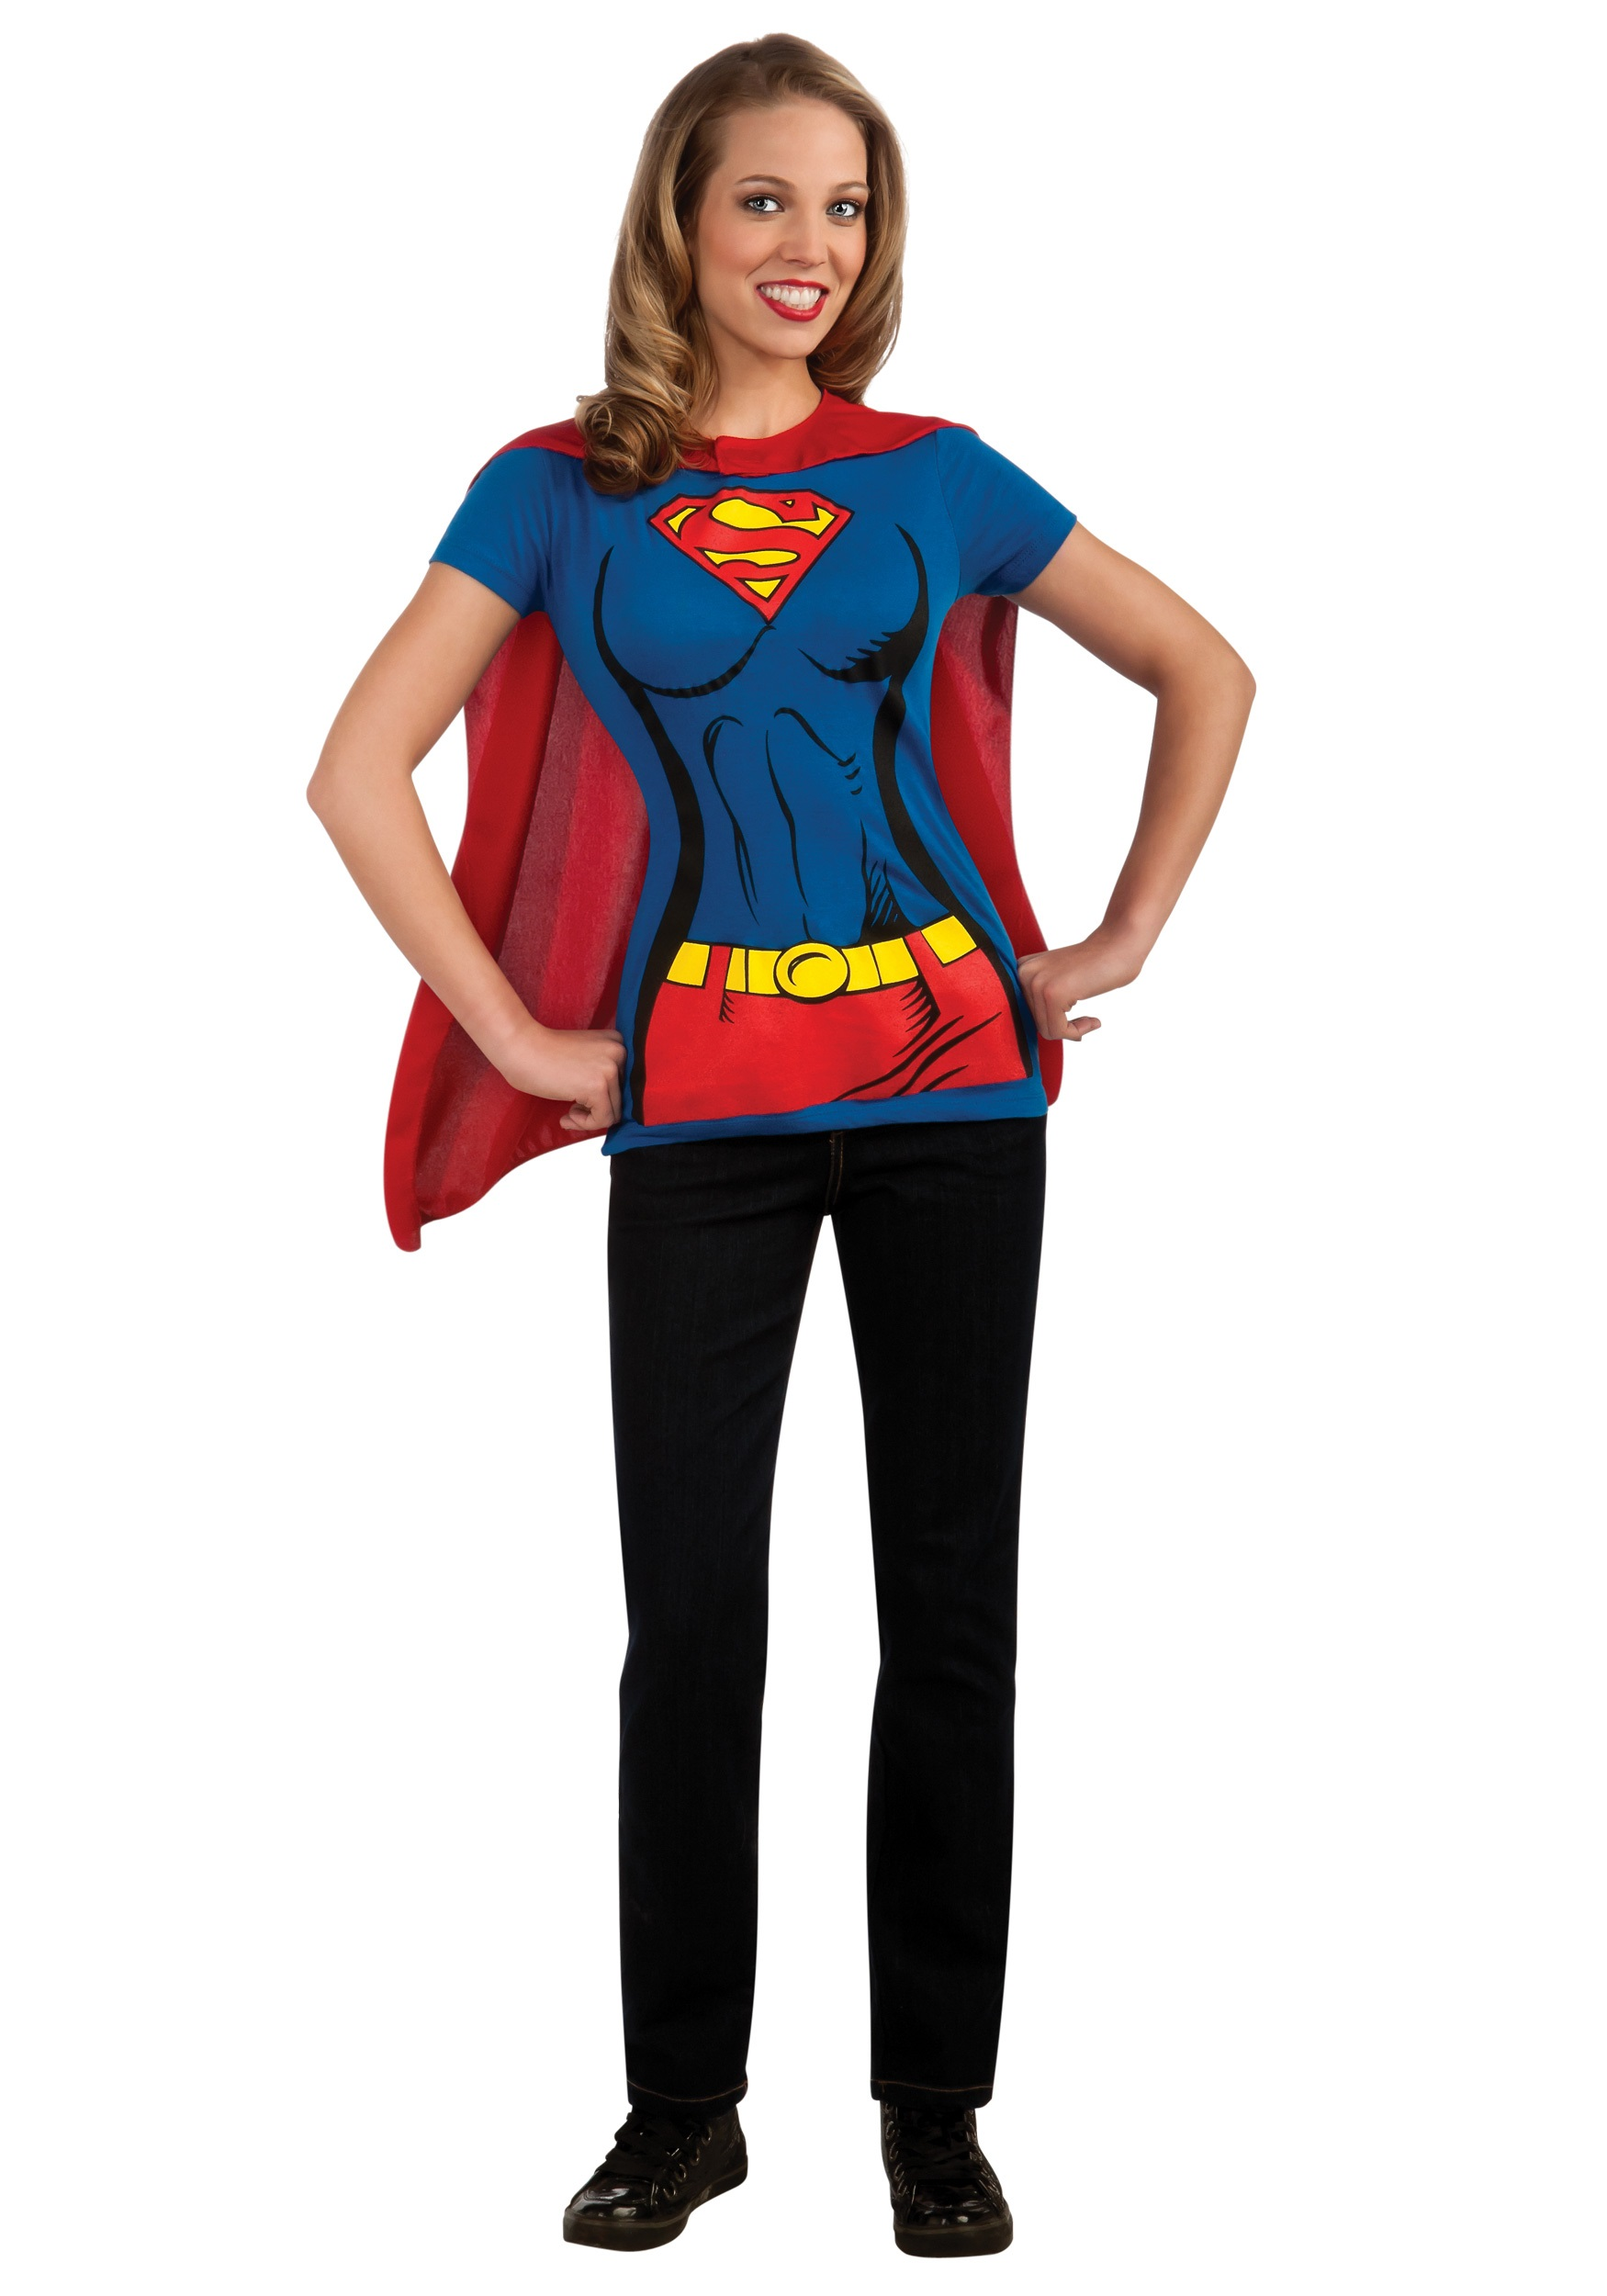 Supergirl T-Shirt Costume  sc 1 st  Halloween Costume & Supergirl T-Shirt Costume - Easy Superhero Costume Ideas